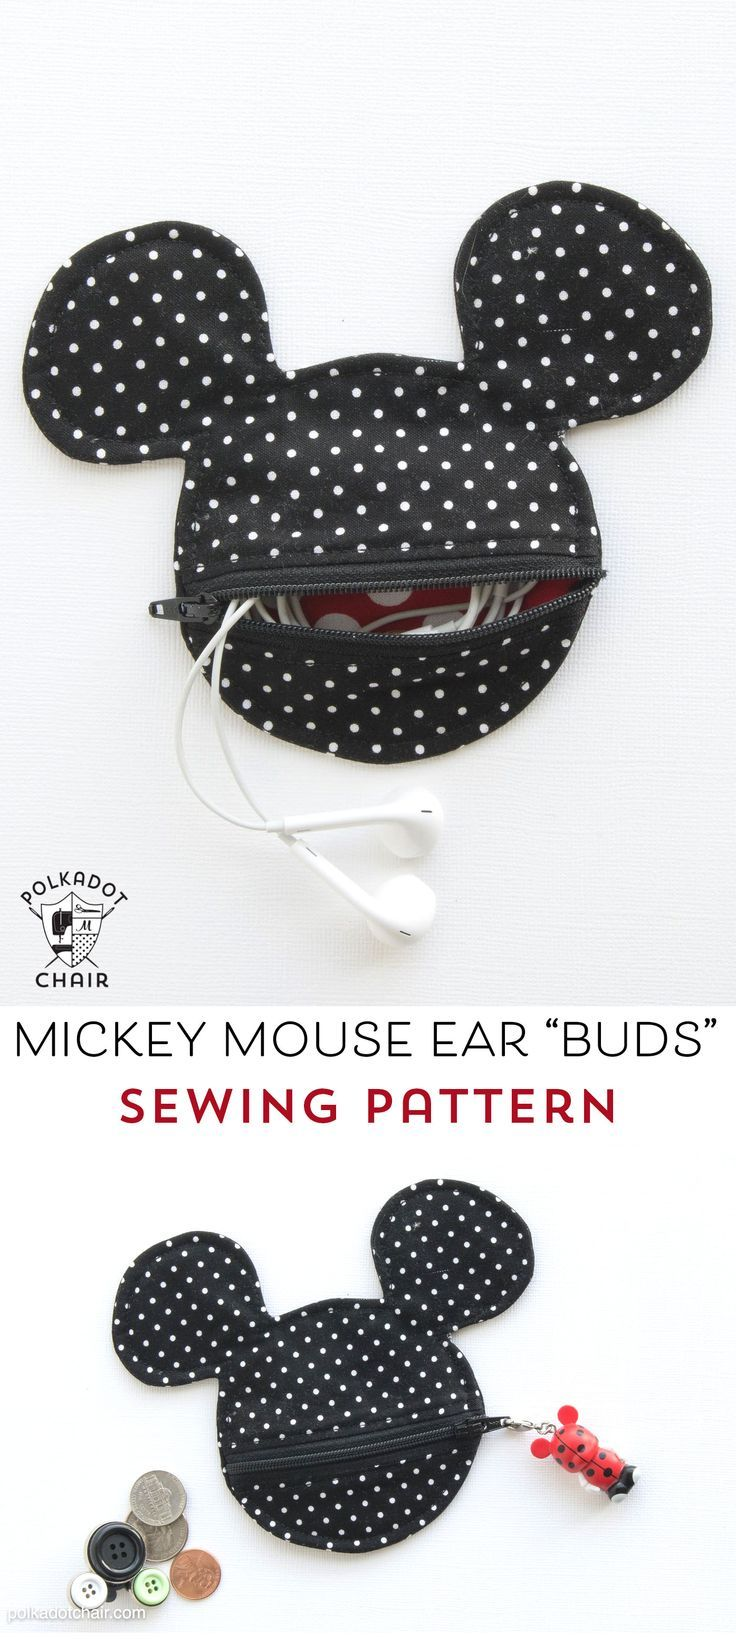 Free Sewing pattern for a Mickey Mouse